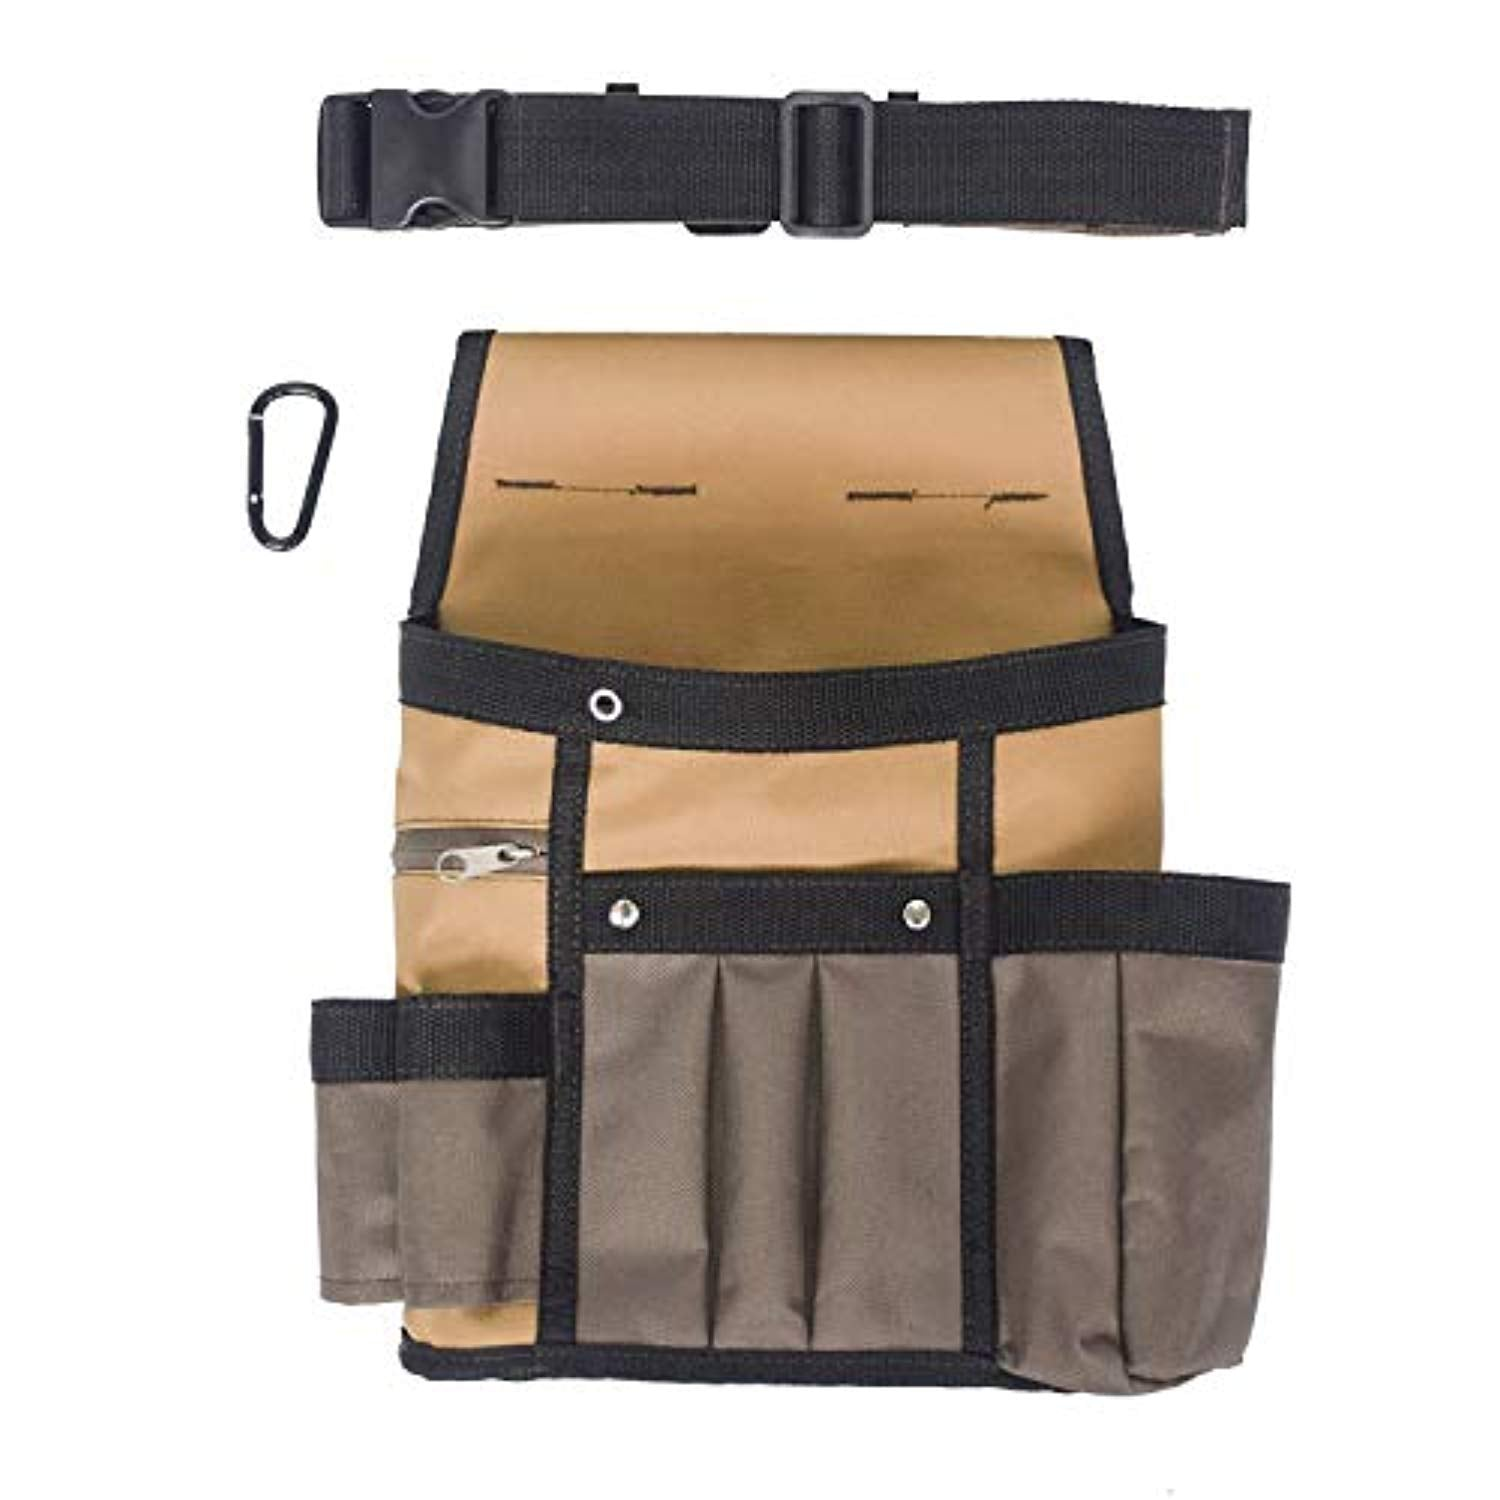 Ationgle Waist Tool Bag,Heavy Duty Canvas Tool Pouch,Adjustable Waist Strap,Durable Maintenance and Electrician's Pouch with Multiple Pockets for Tools,Flashlight,Keys